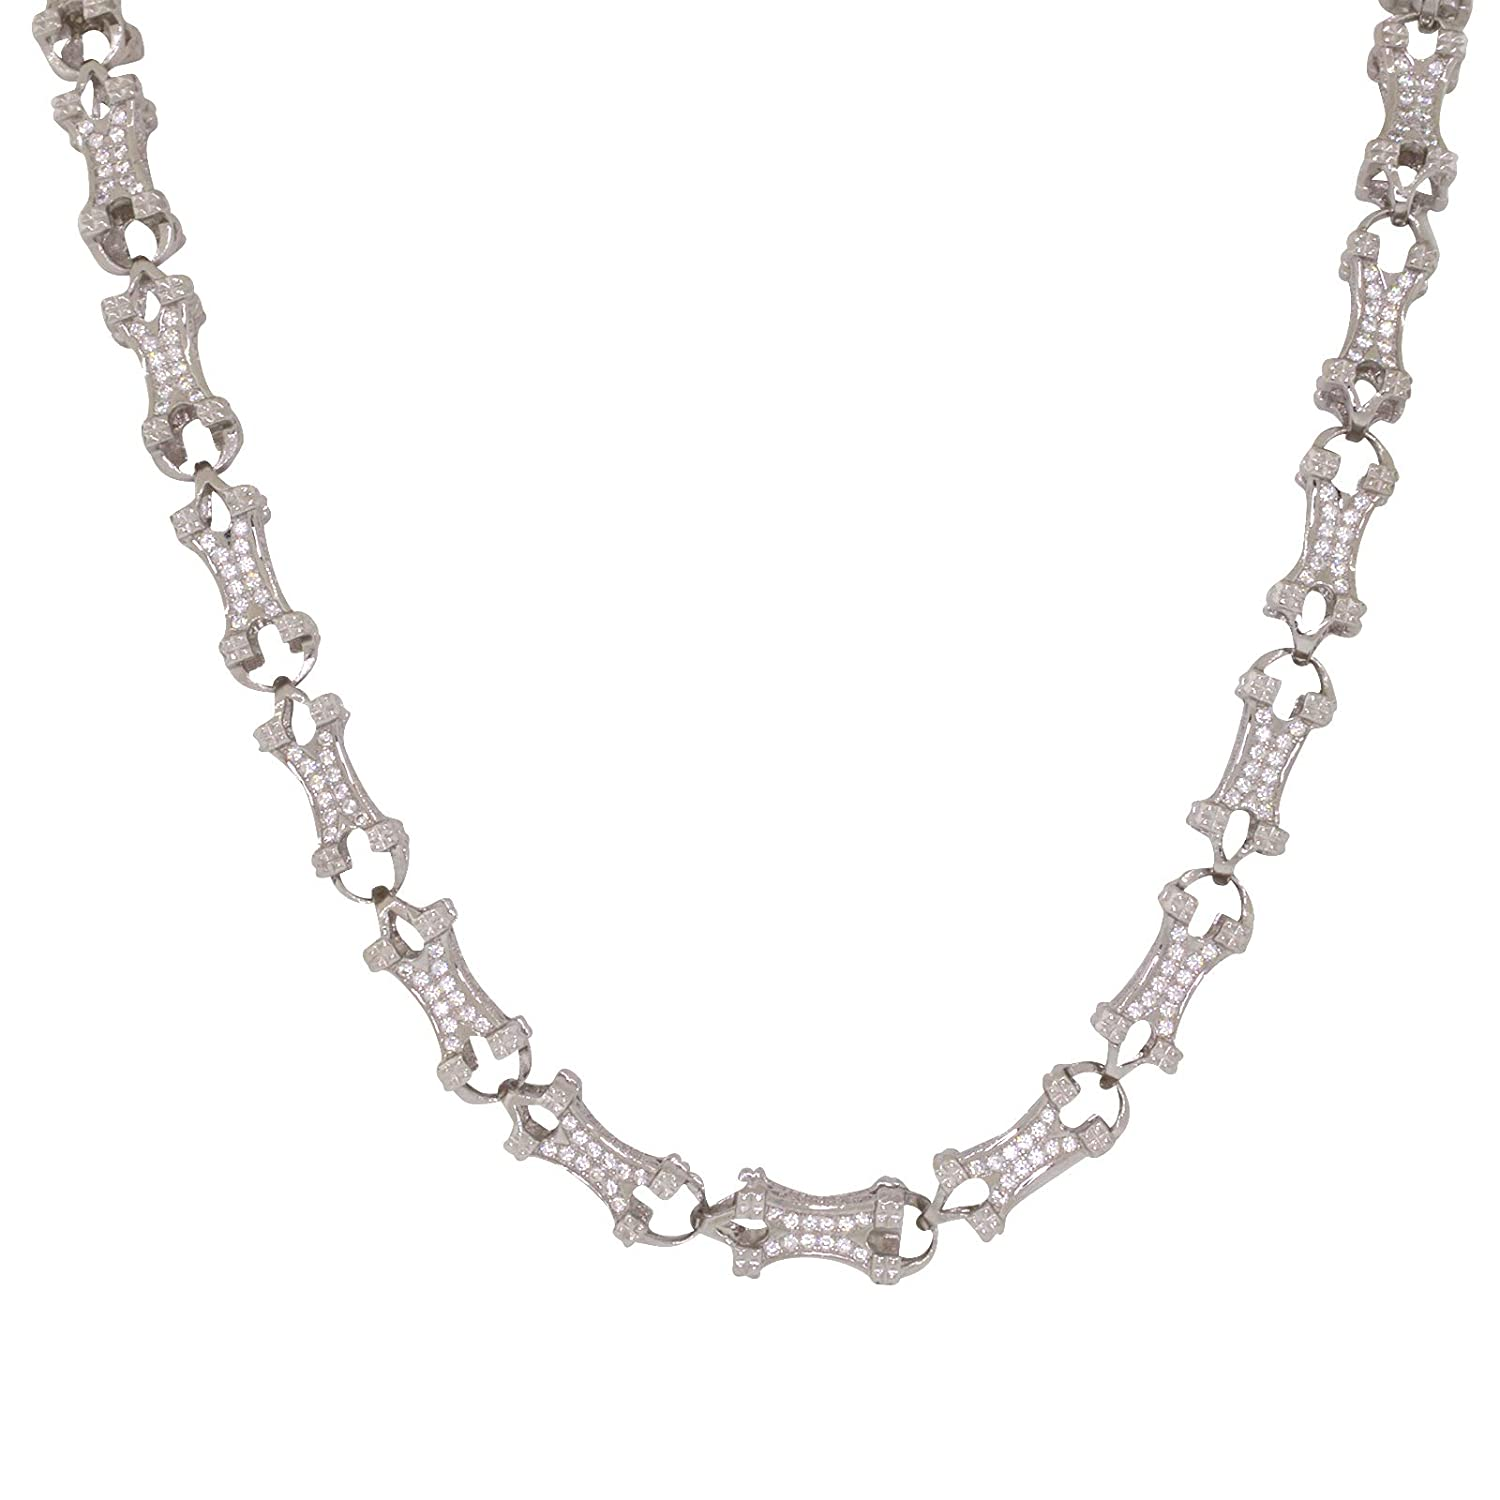 .925 Italy Sterling Silver /& Rhodium Round Box 1.5mm Link Italian Chain Necklace